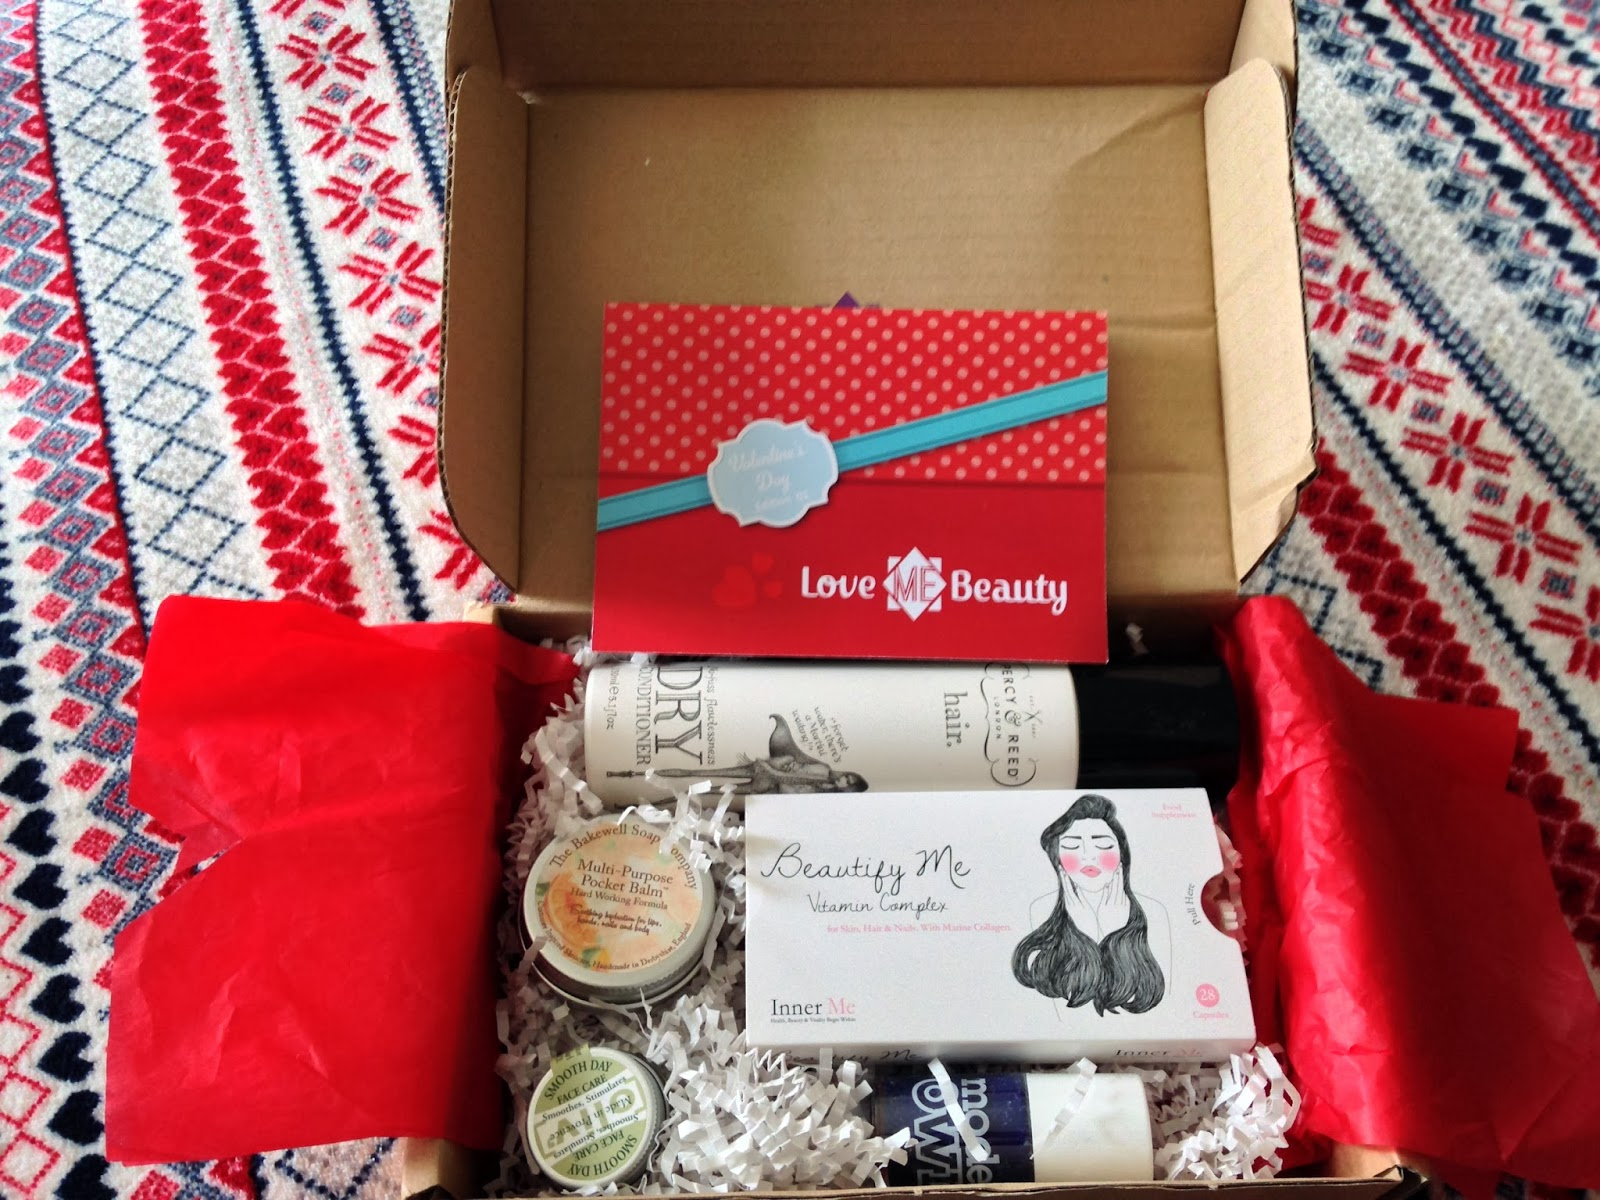 Love me beauty box contents February 2014